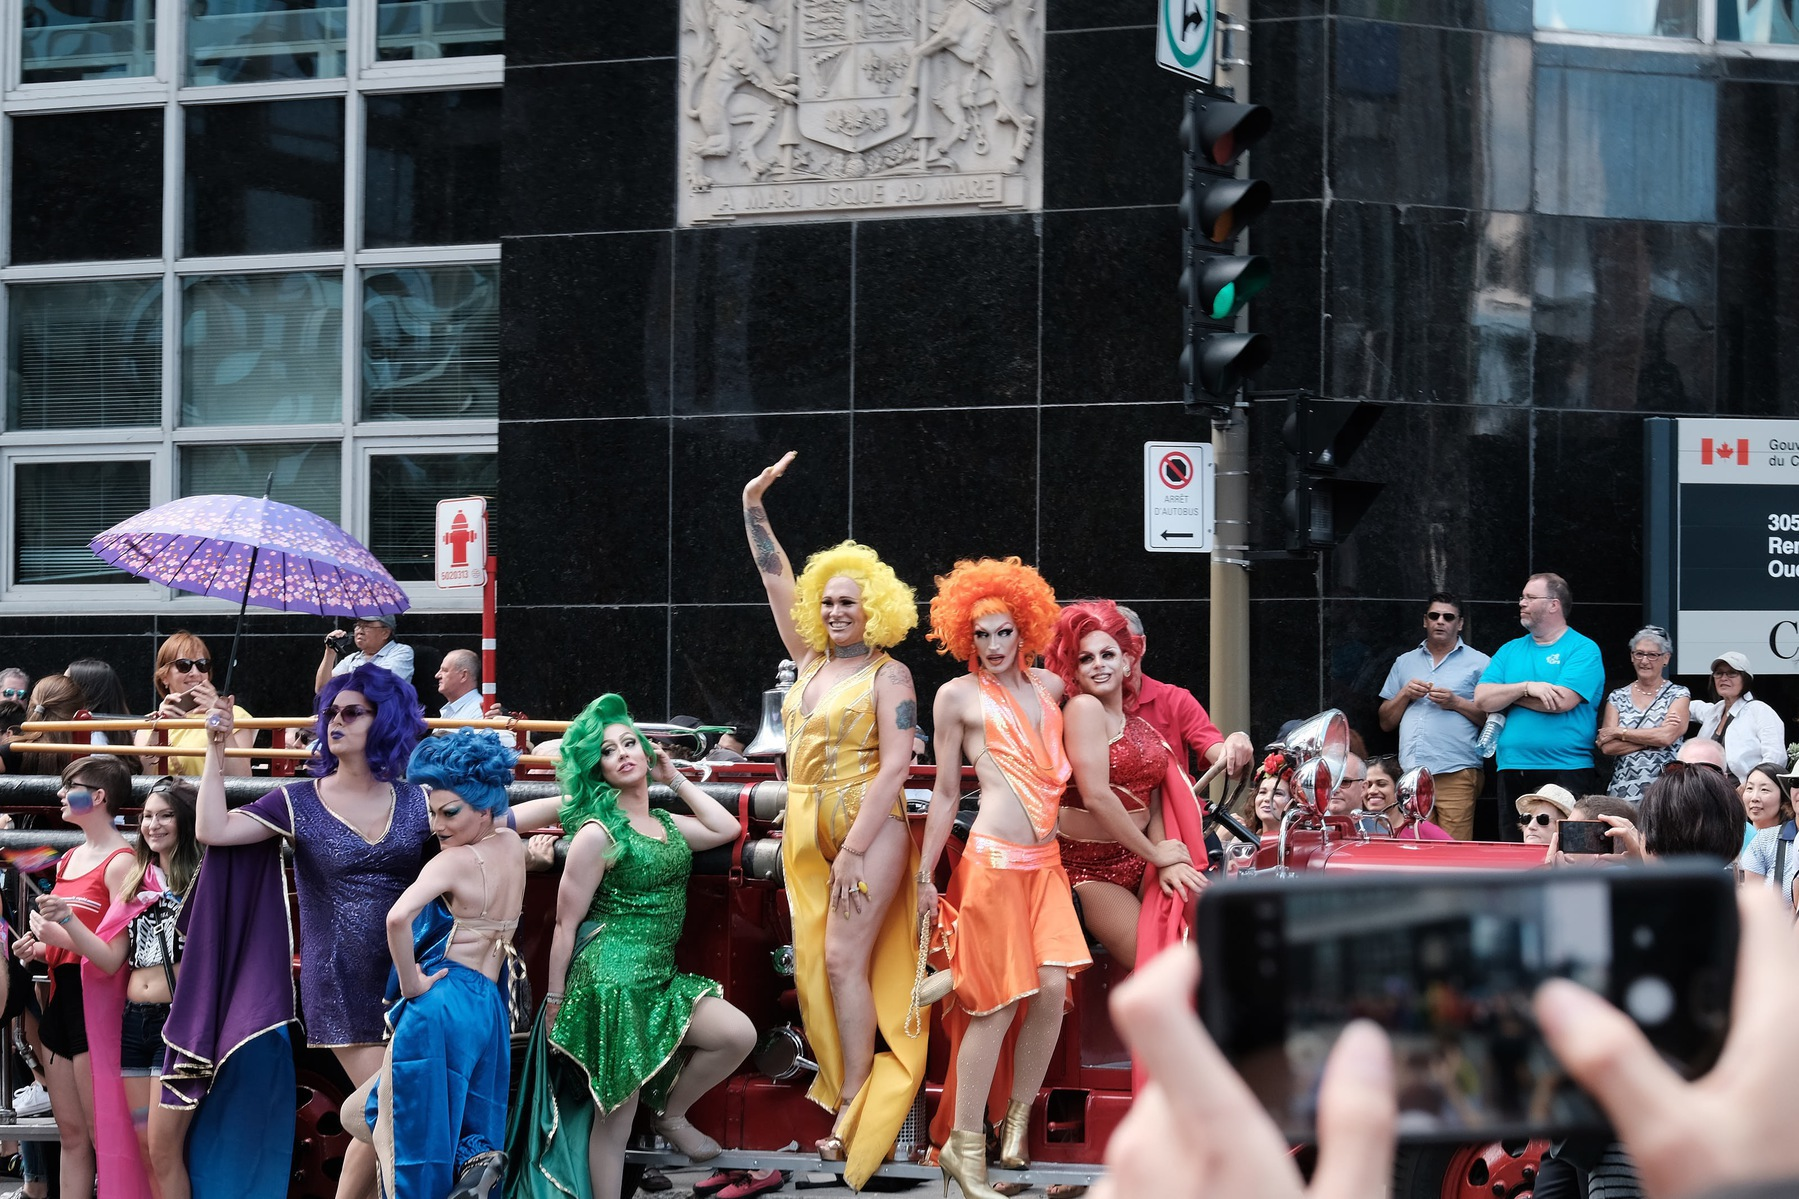 A crowd of drag queens post on an antique fire engine. A hand holding a phone is in the foreground, taking a picture.